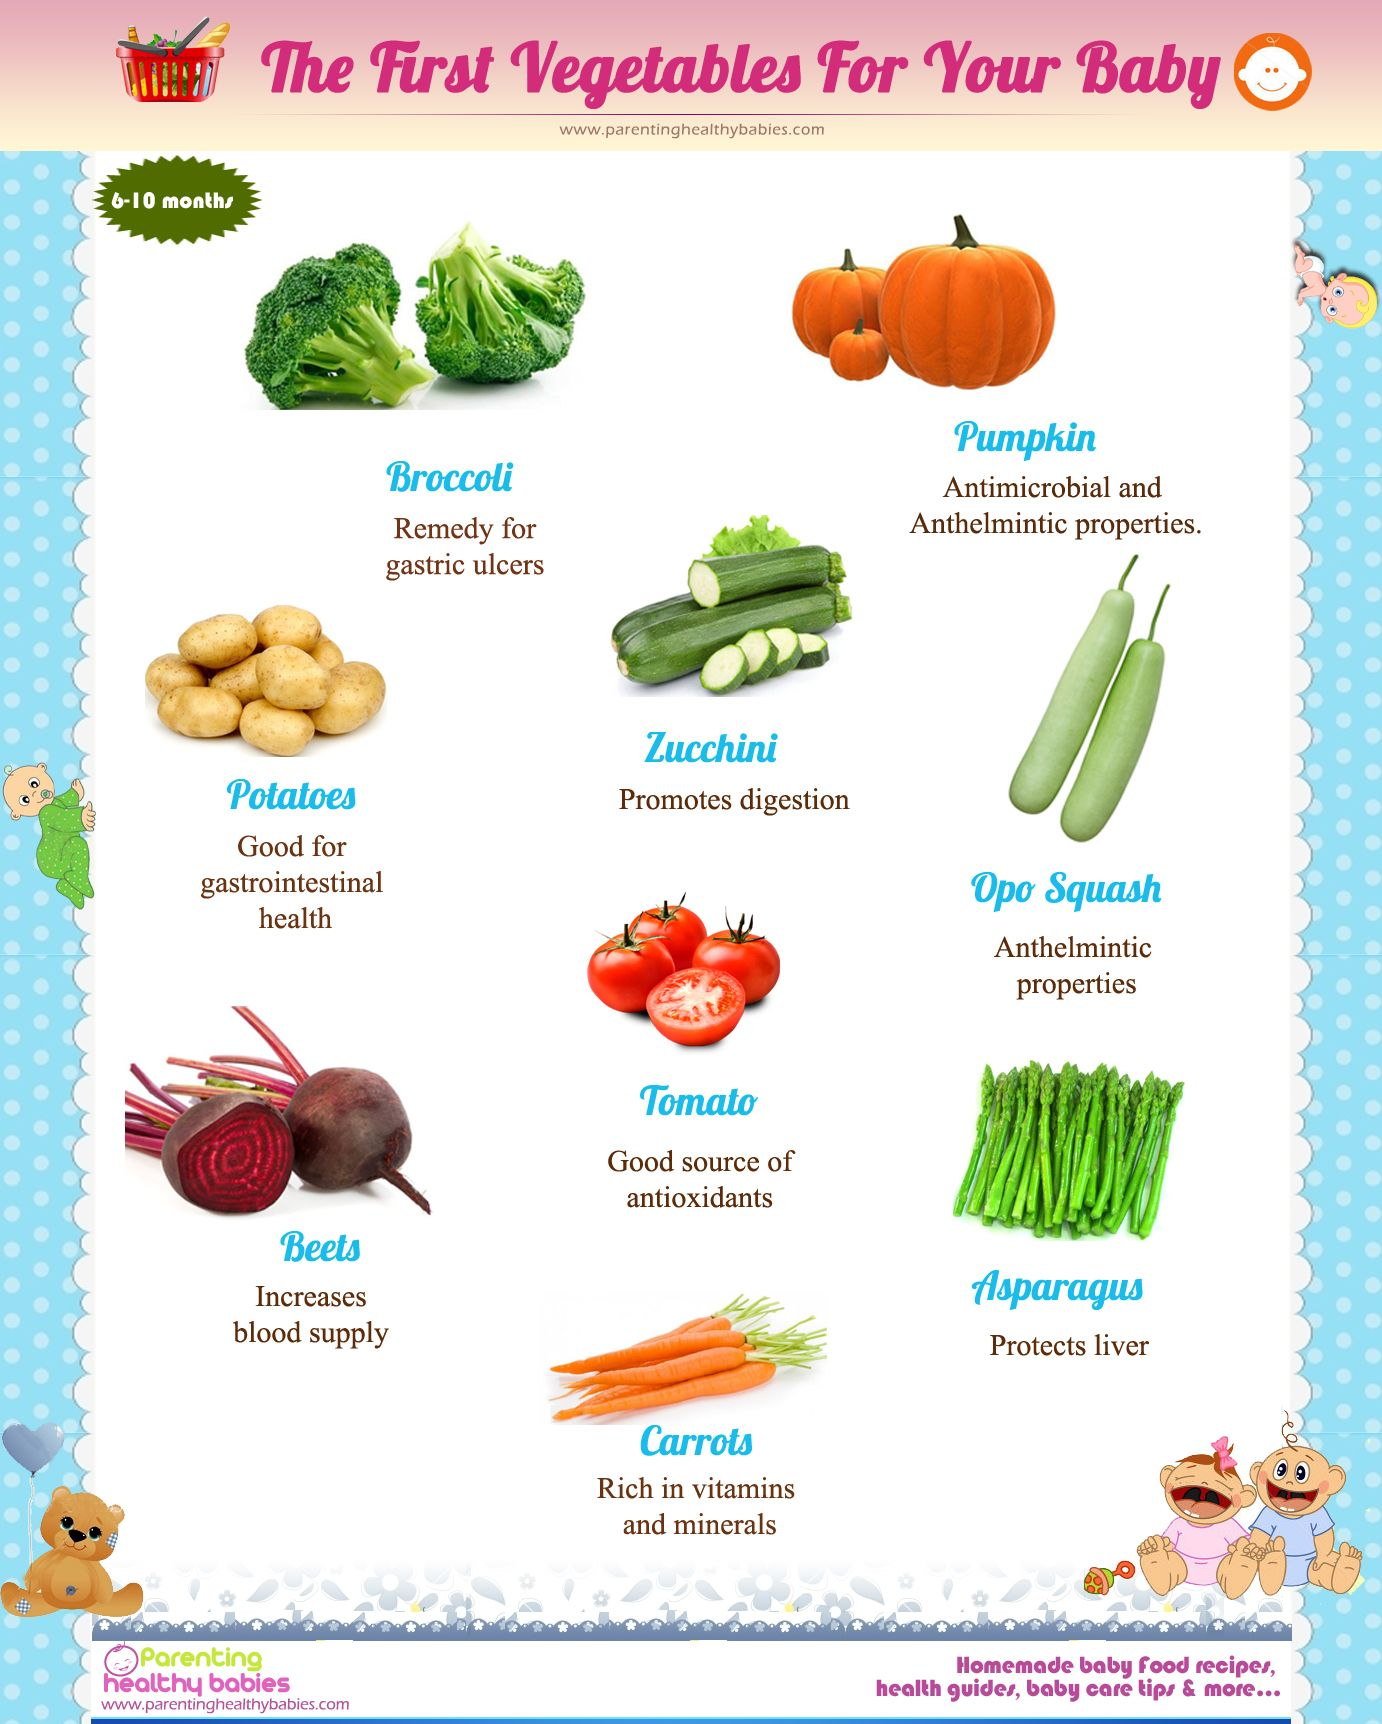 The First Vegetables For Your Baby - ParentingHealthyBabies.com